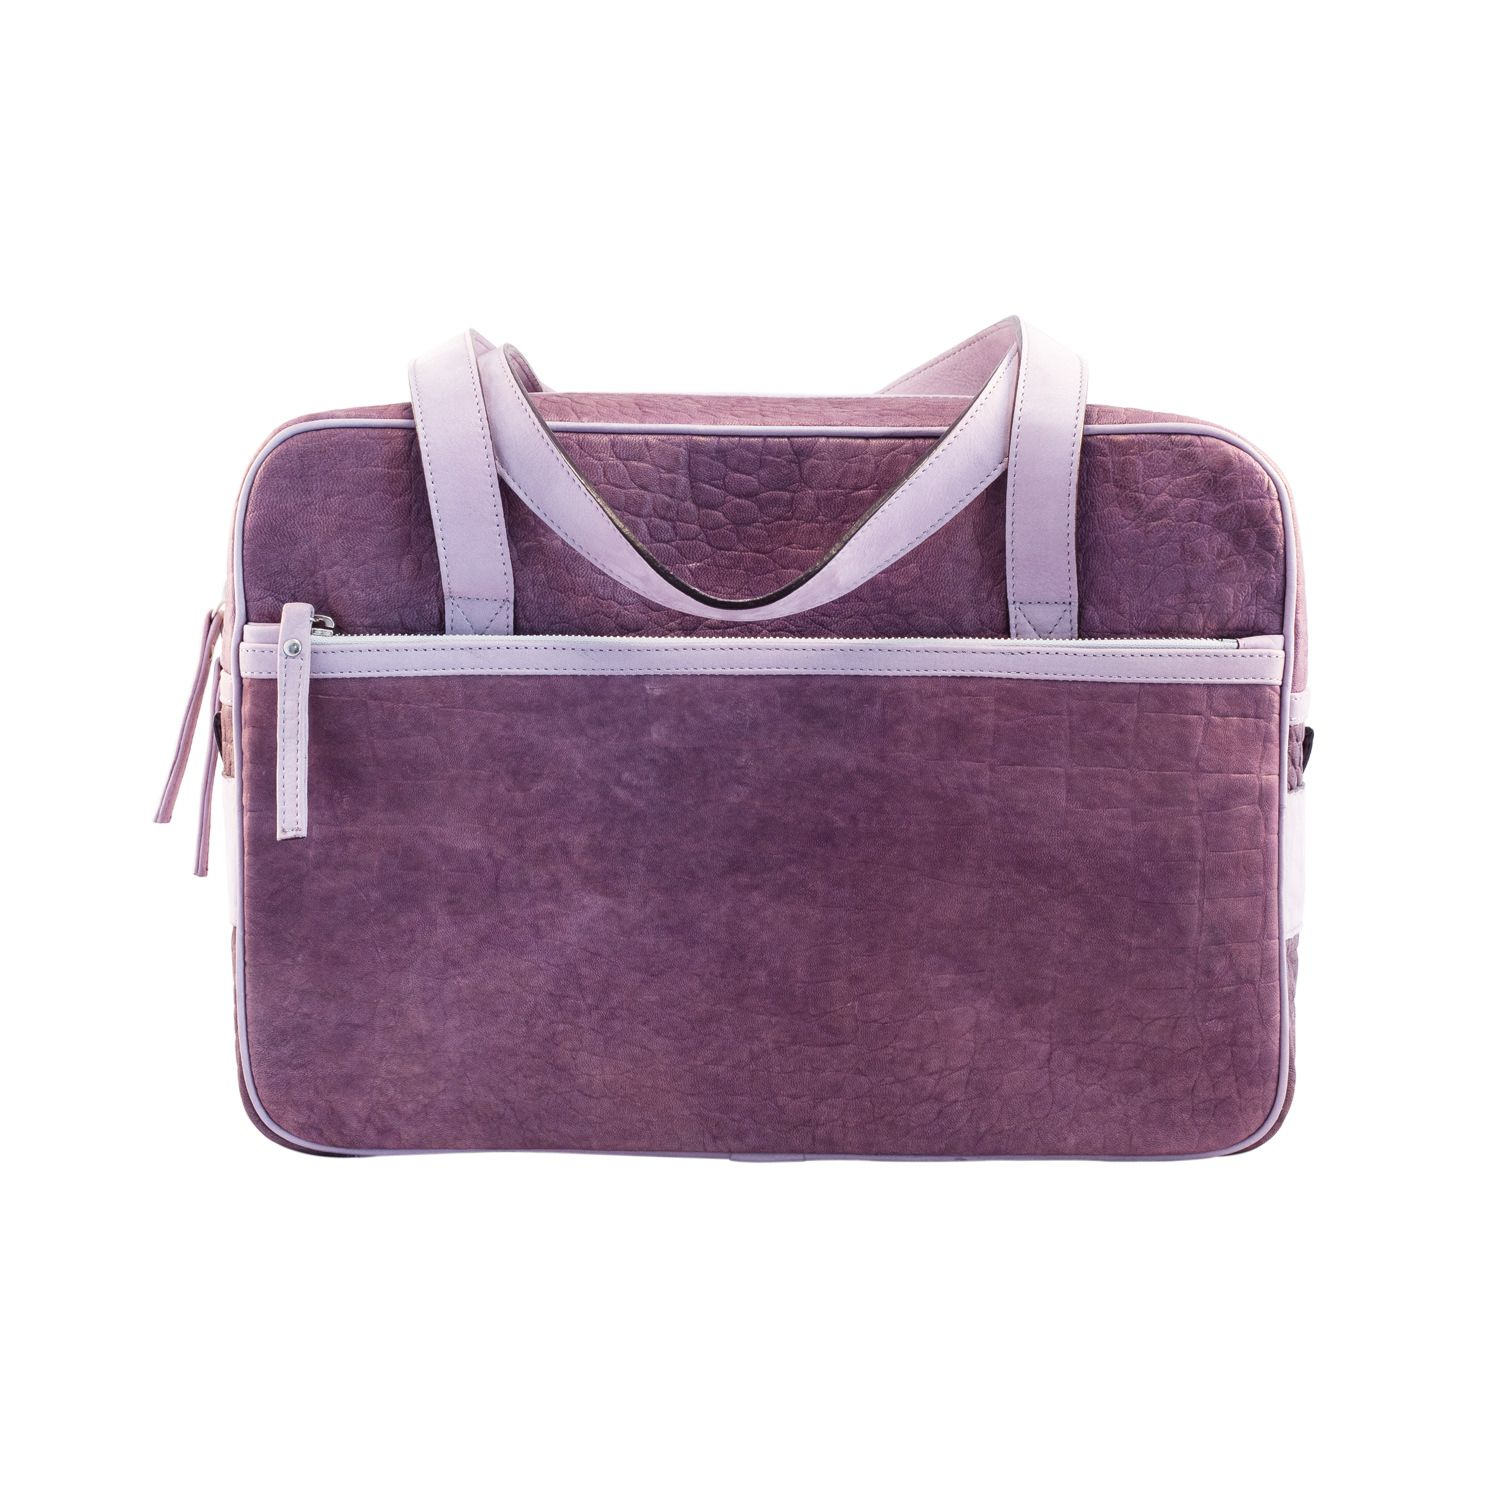 Bashioma Asburry Bag Exclusive Edition (1pc/wwld)